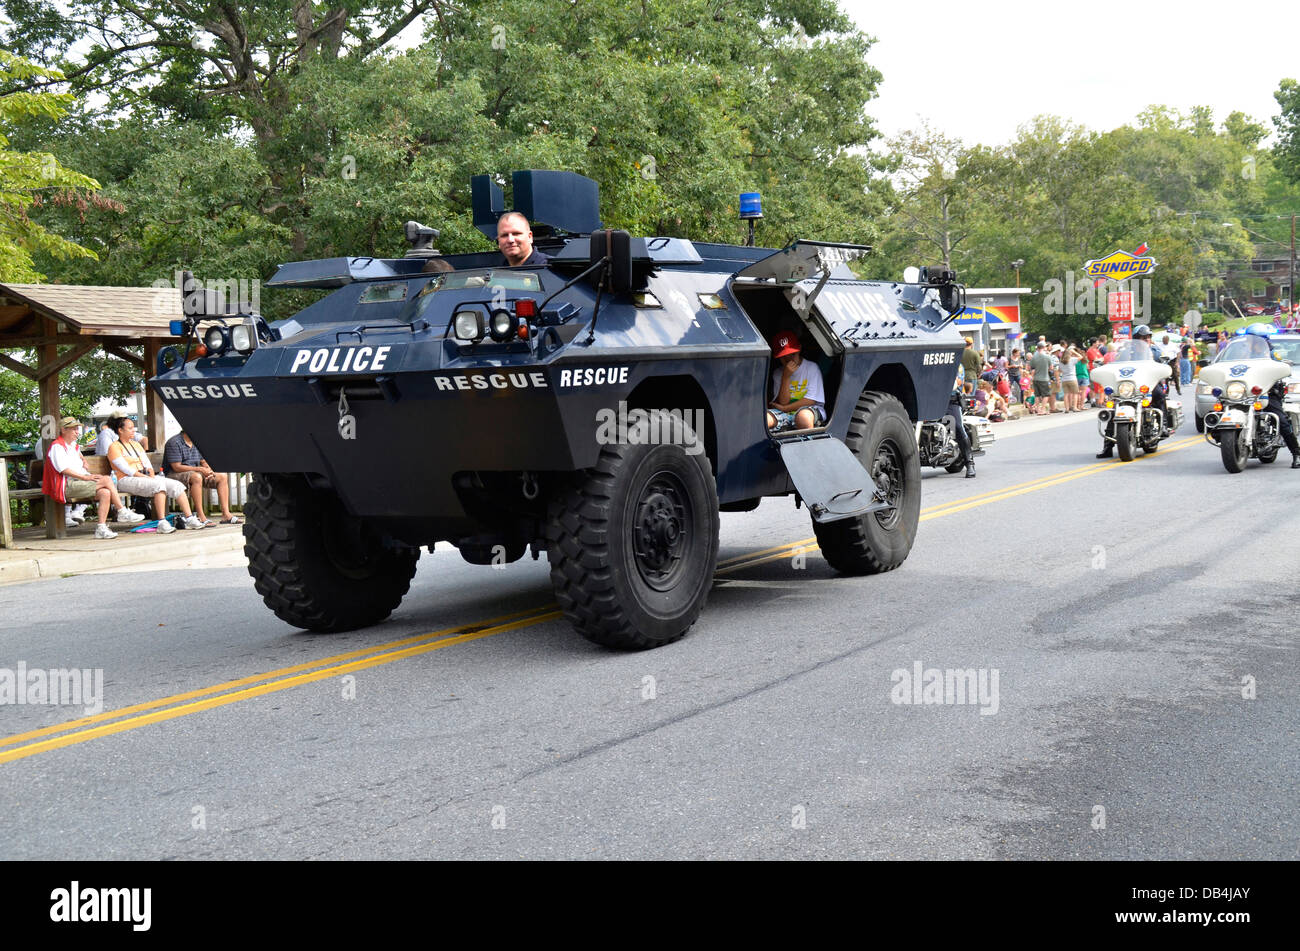 Police armored car in a parade in Greenbelt, Maryland - Stock Image